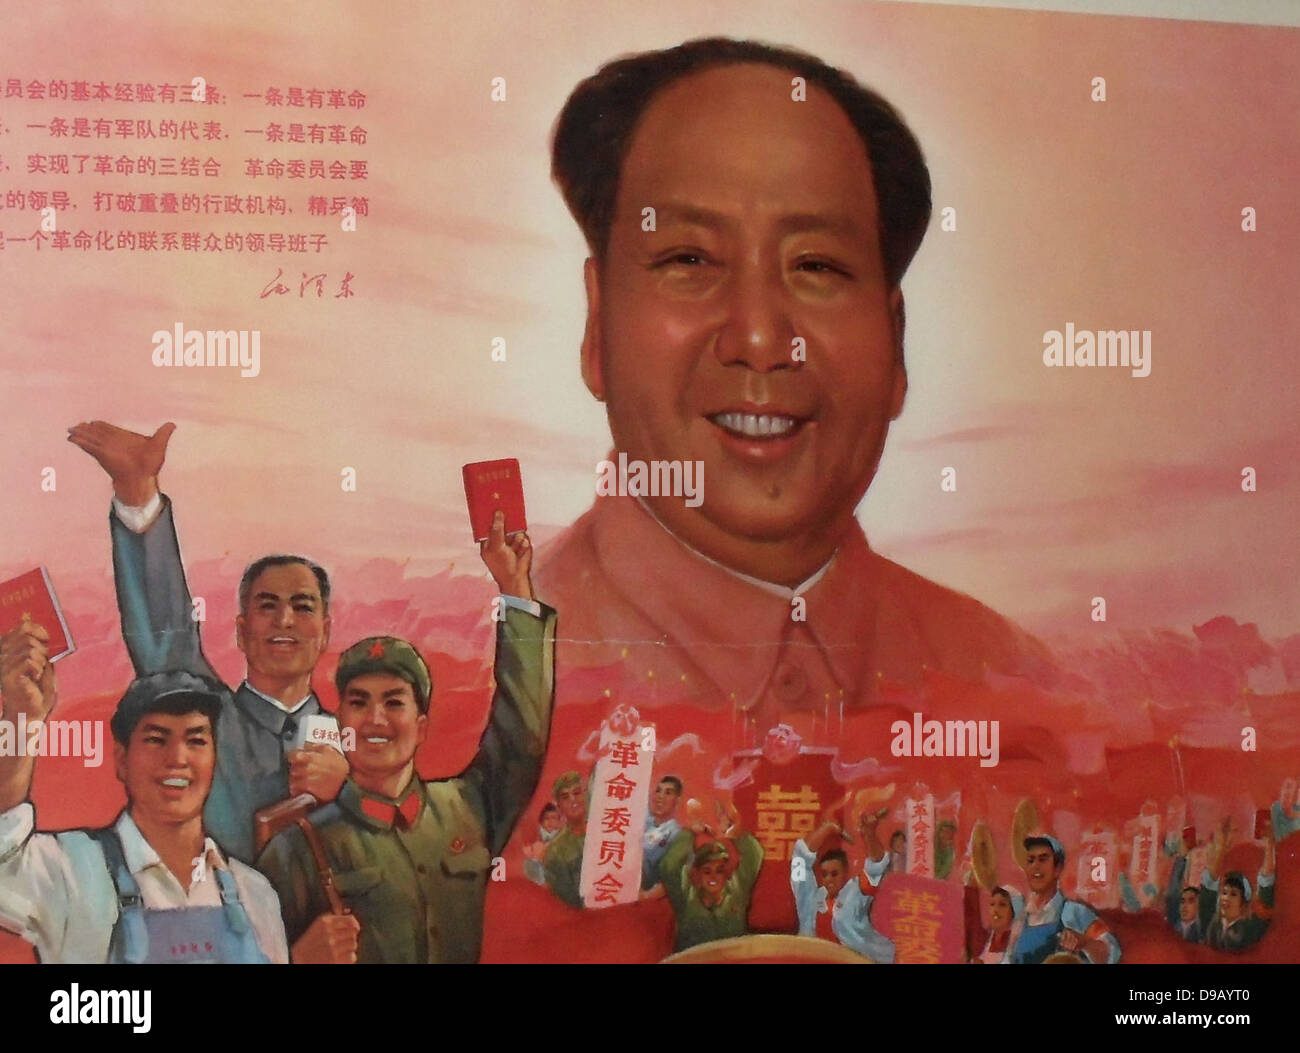 the peoples republic of china essay This coursebook covers paper 3, hl option 3: history of asia and oceania, topic 14: the people's republic of china (1949-2005) of the history for the international baccalaureate (ib) diploma syllabus for first assessment in 2017.